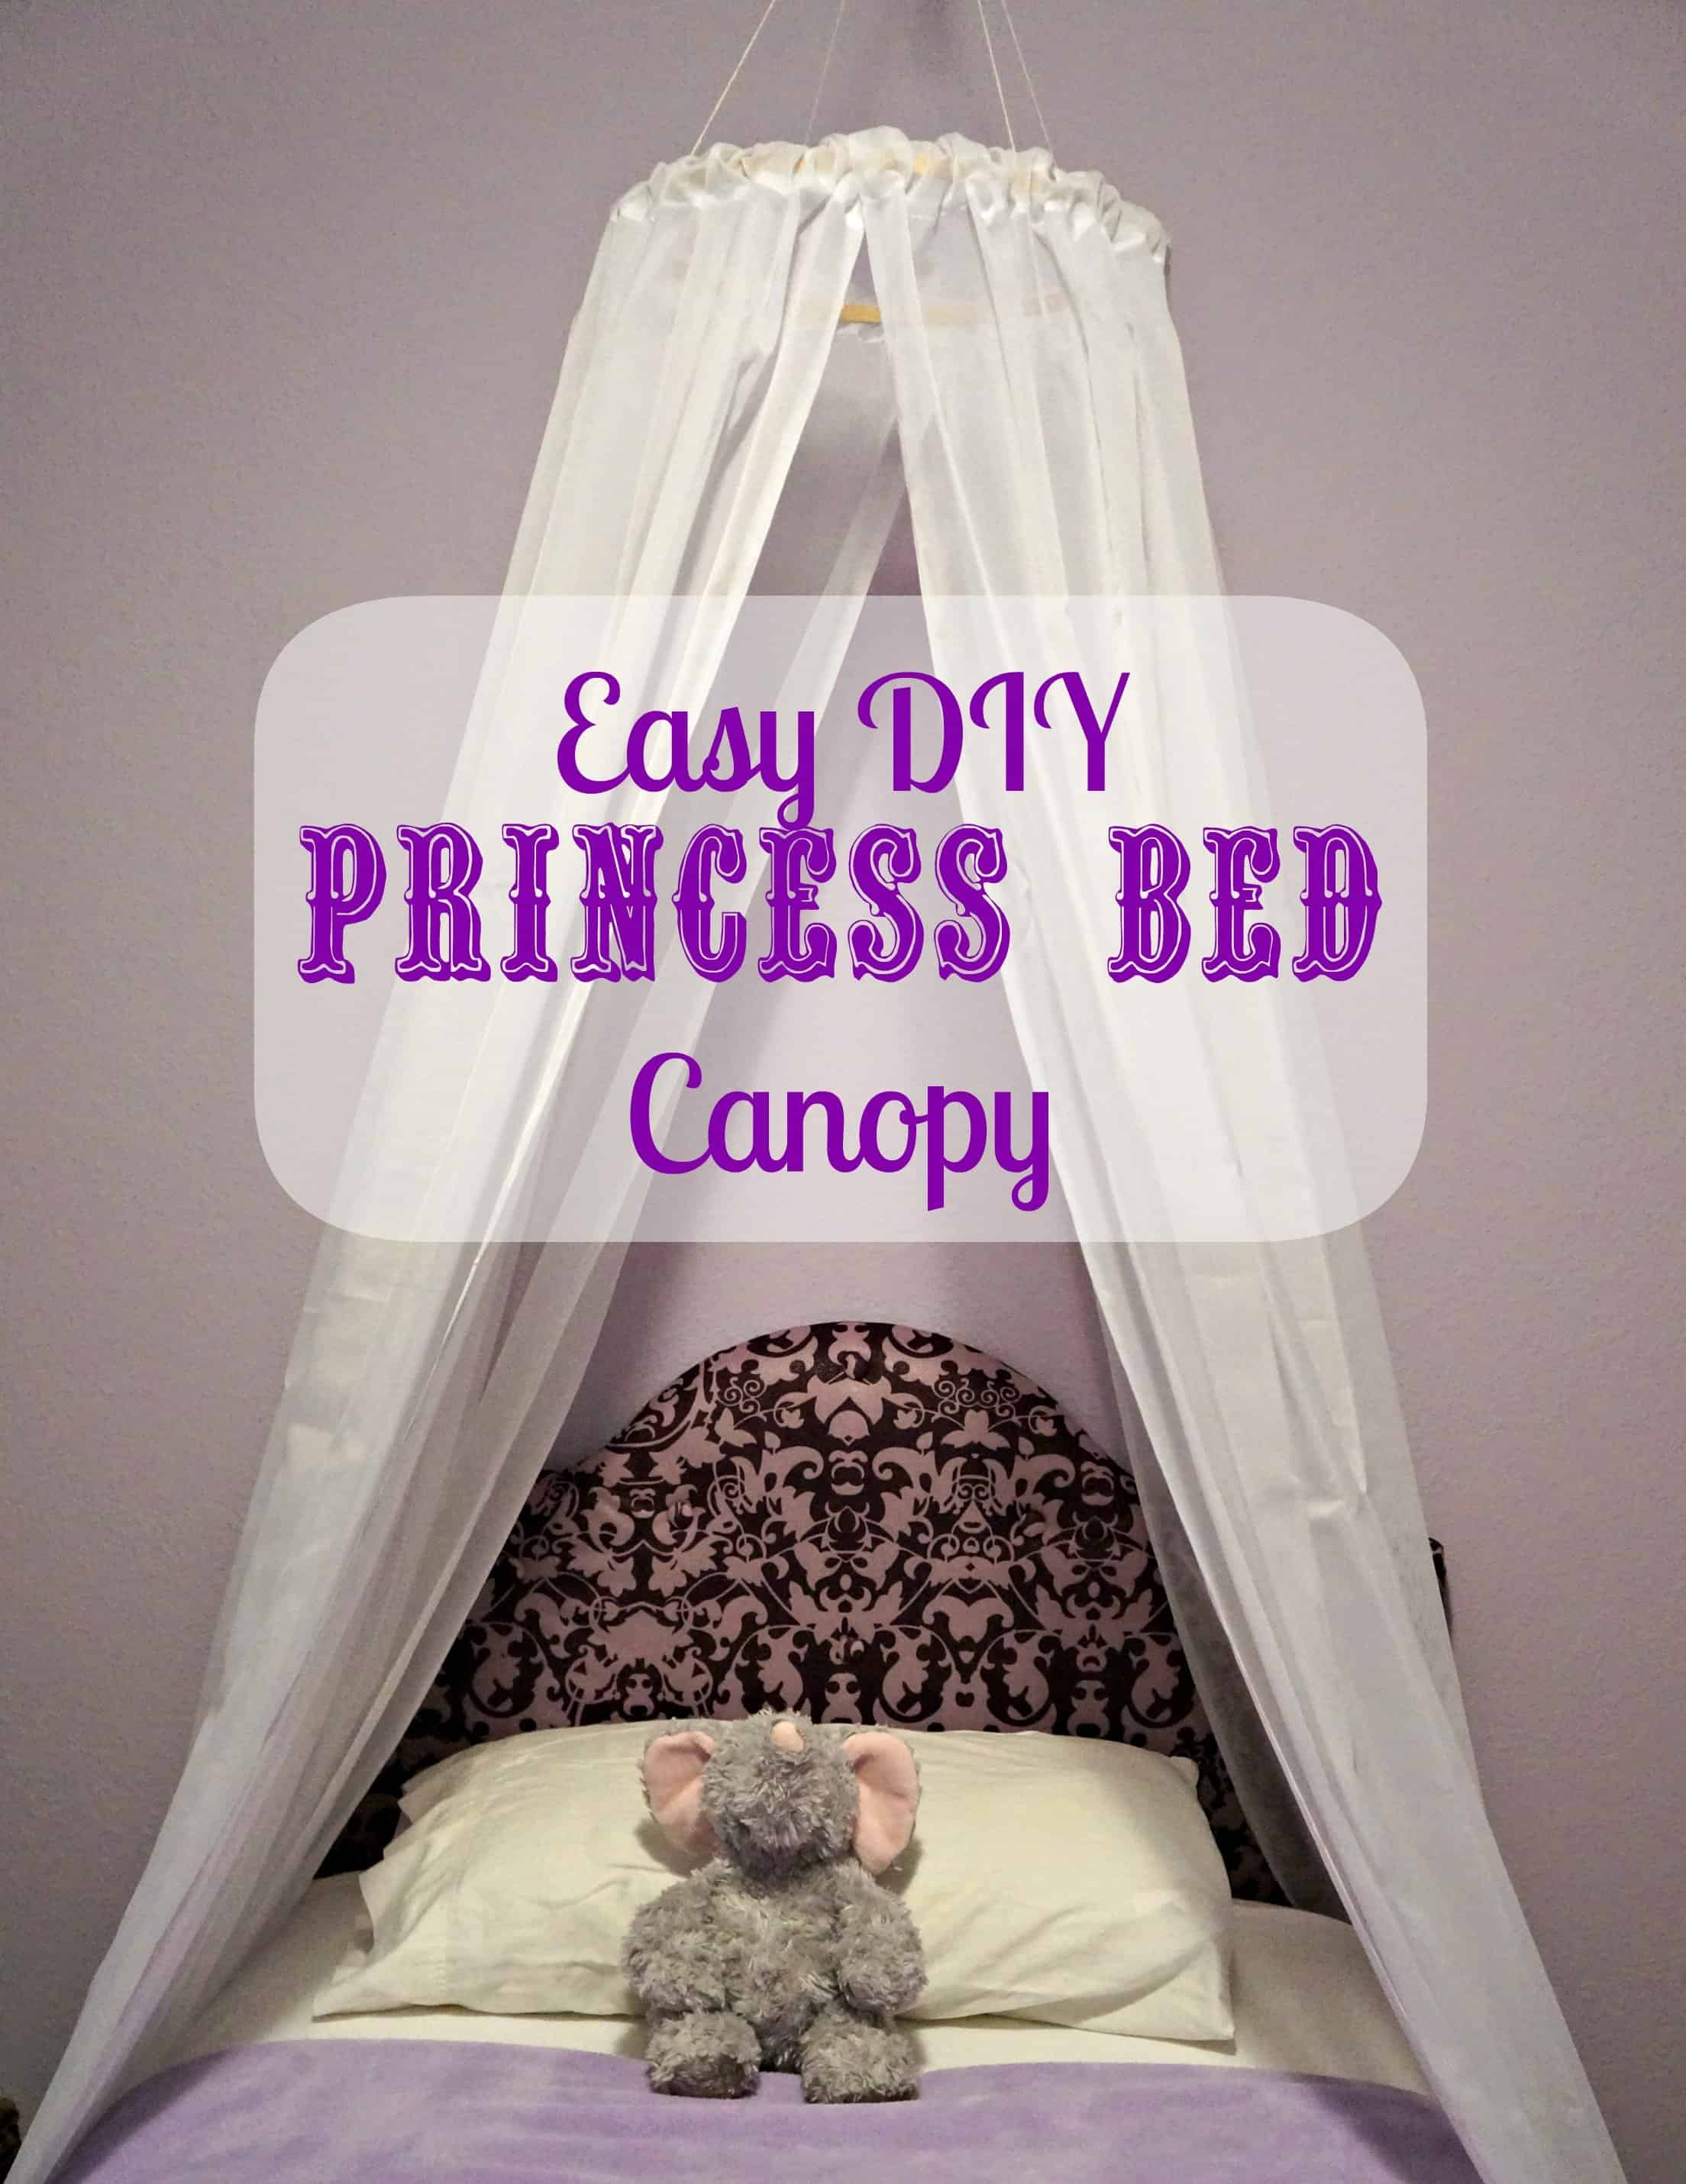 Easy Diy Princess Bed Canopy No Sew Comes Together In Under 10 Minutes